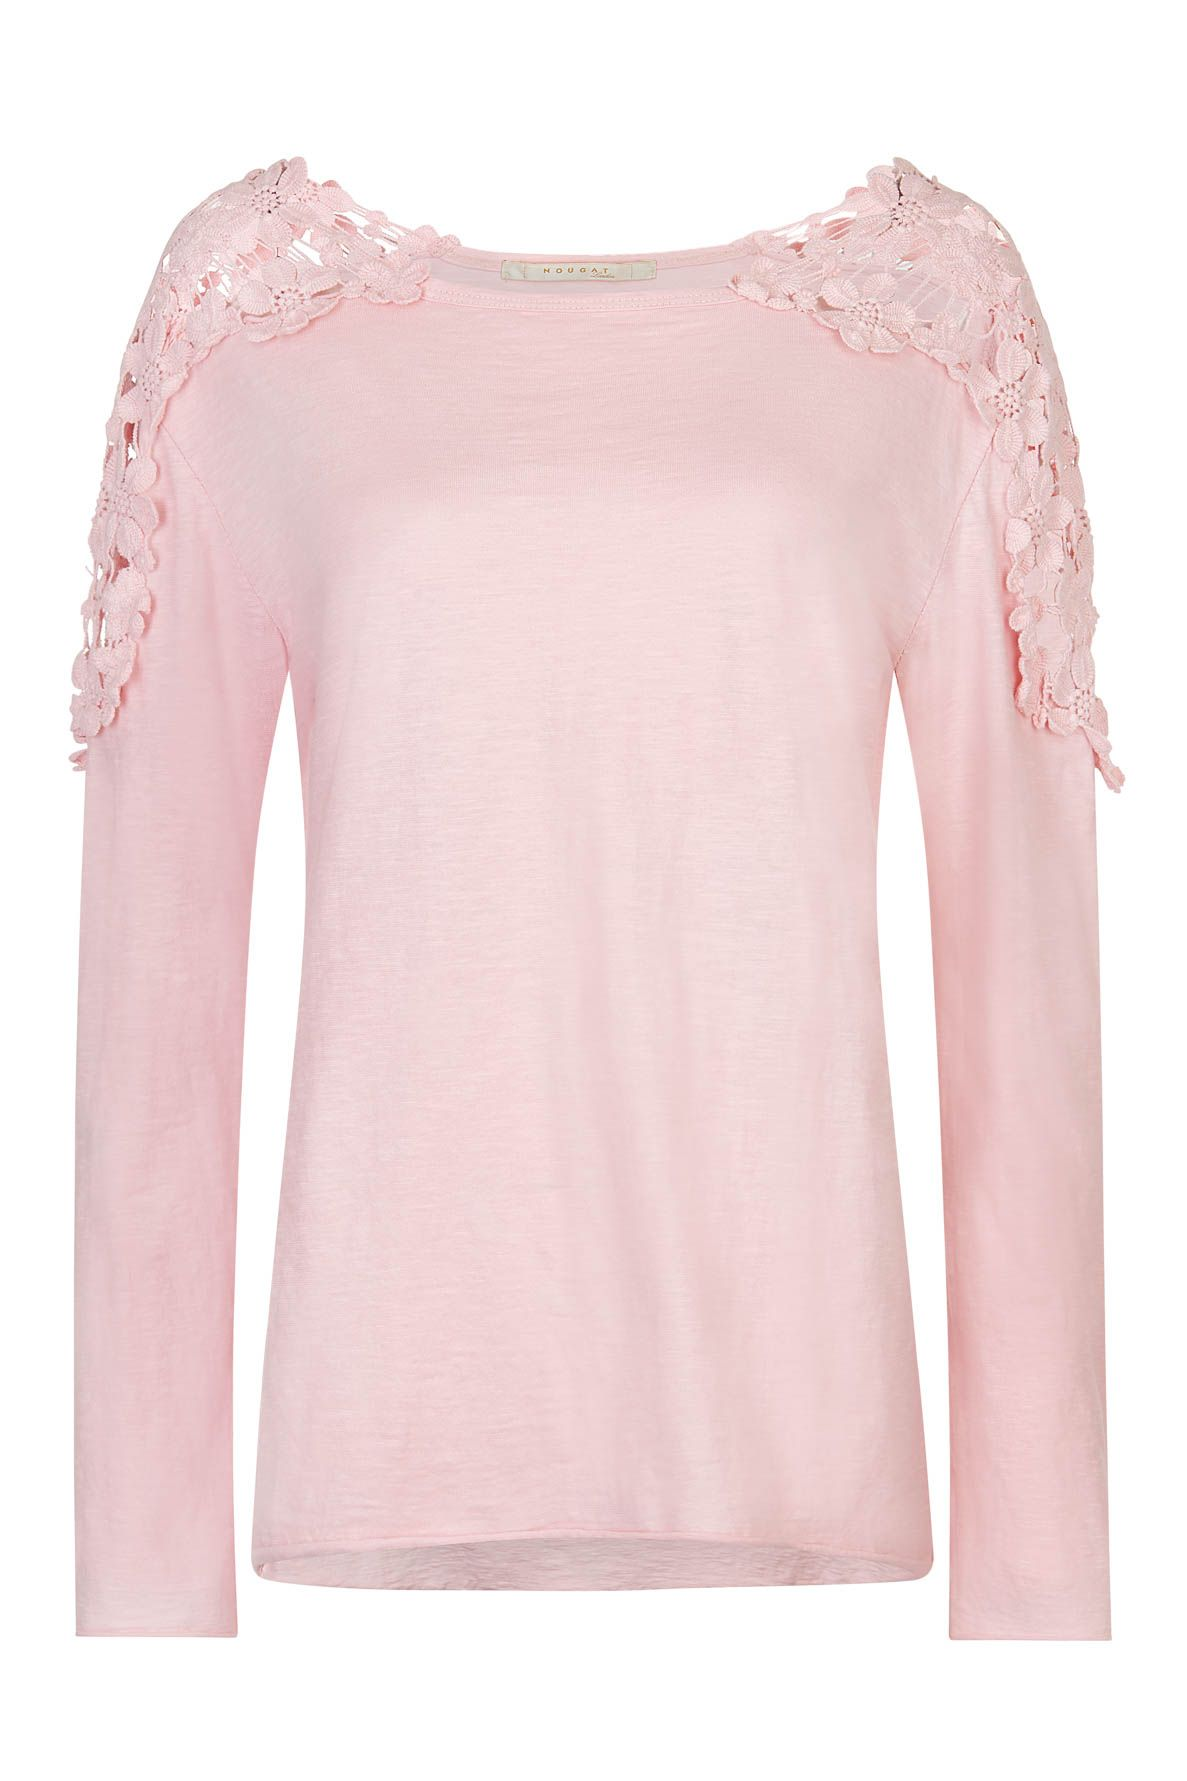 Nougat London Tuberose Crochet Top, Pink